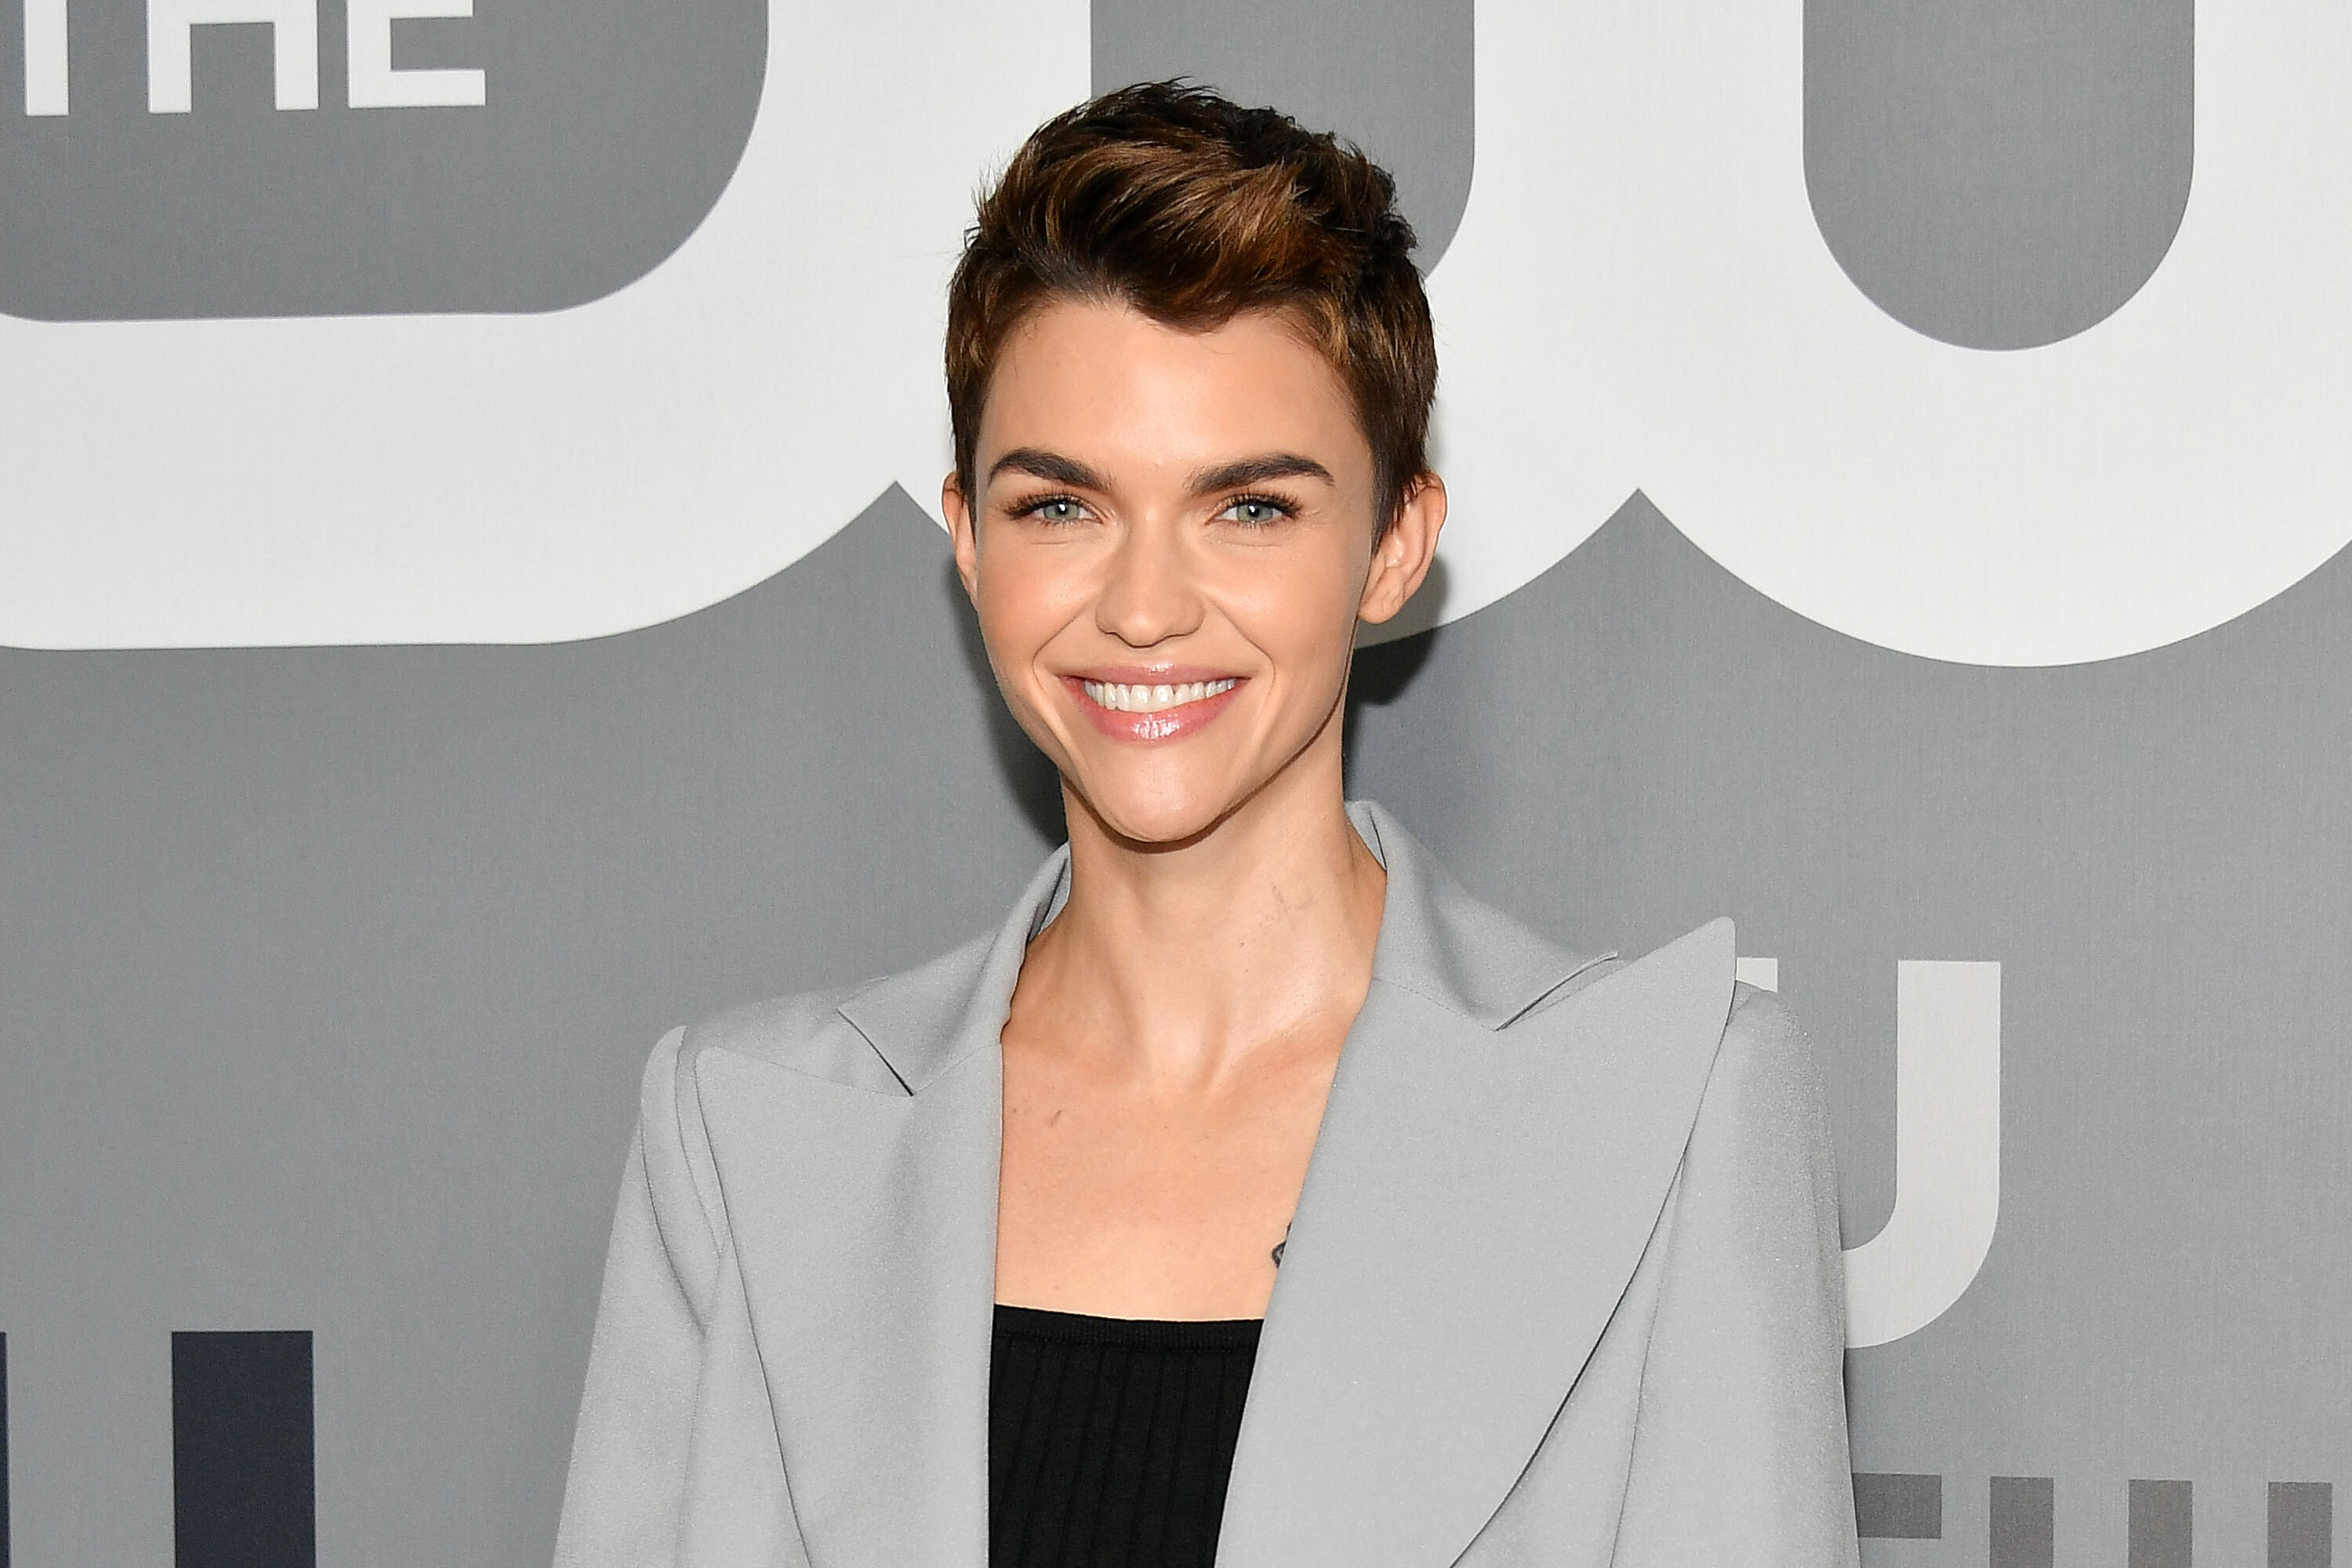 Ruby Rose alleges unsafe working conditions on 'Batwoman' set